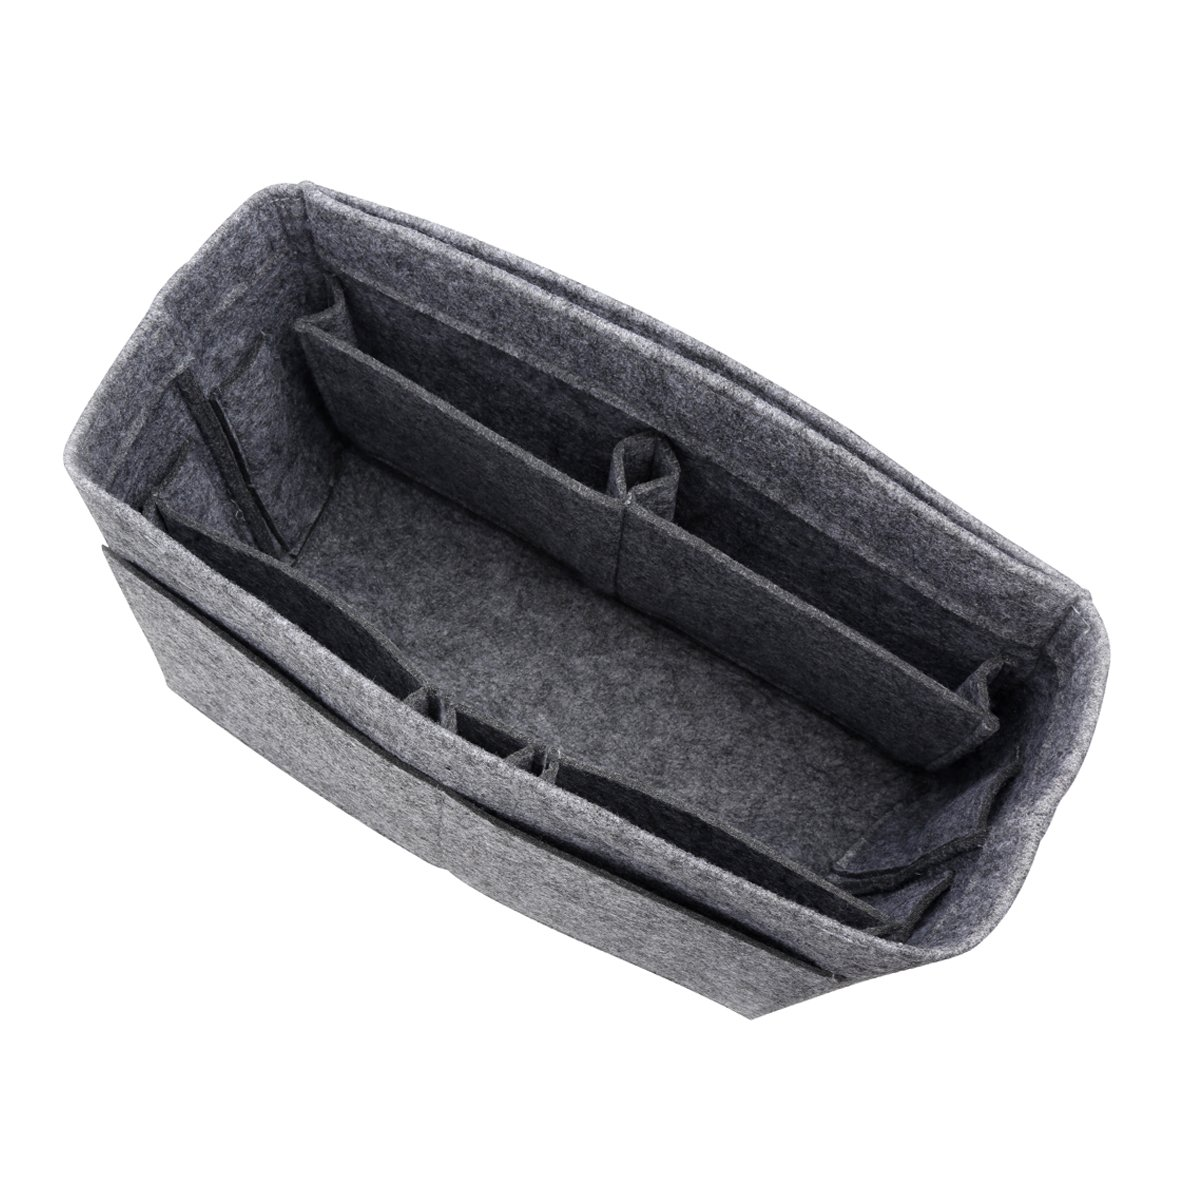 Actater Large Felt Purse Organizer Insert, Multi-Pocket Handbag Shaper, fits Tote Bag like Speedy or Neverfull (Grey)